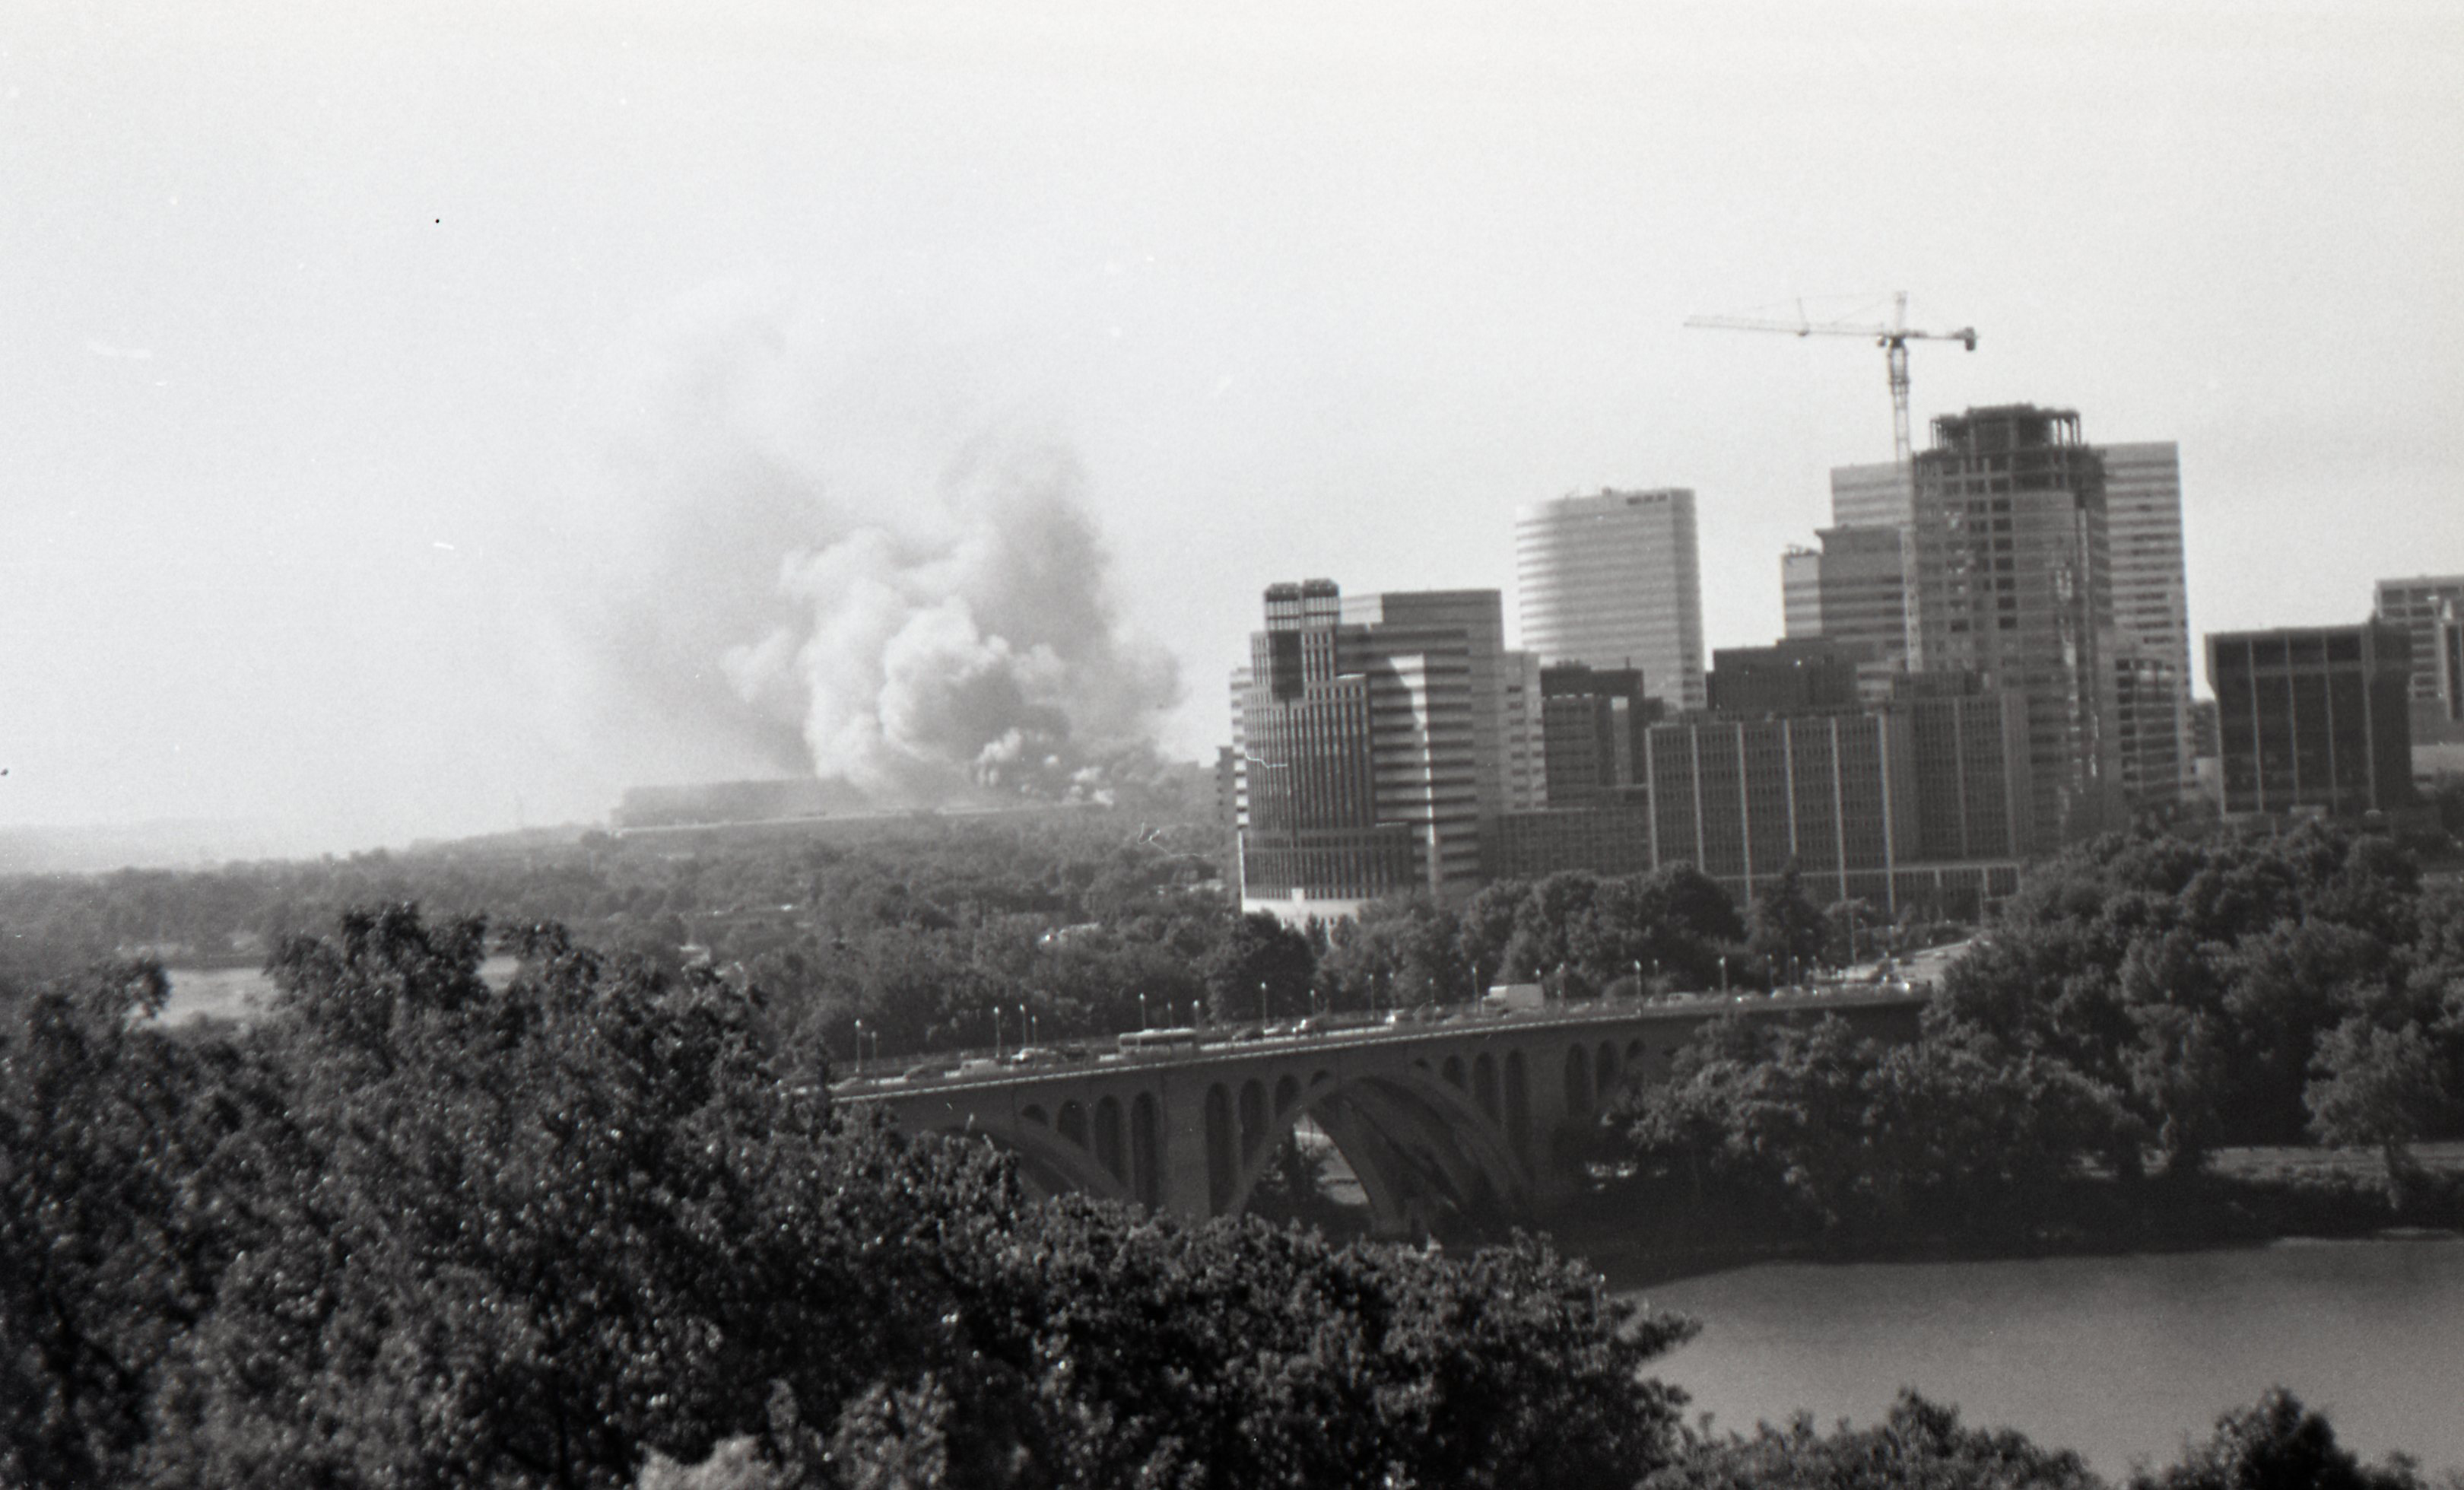 View from Lauinger on 9/11